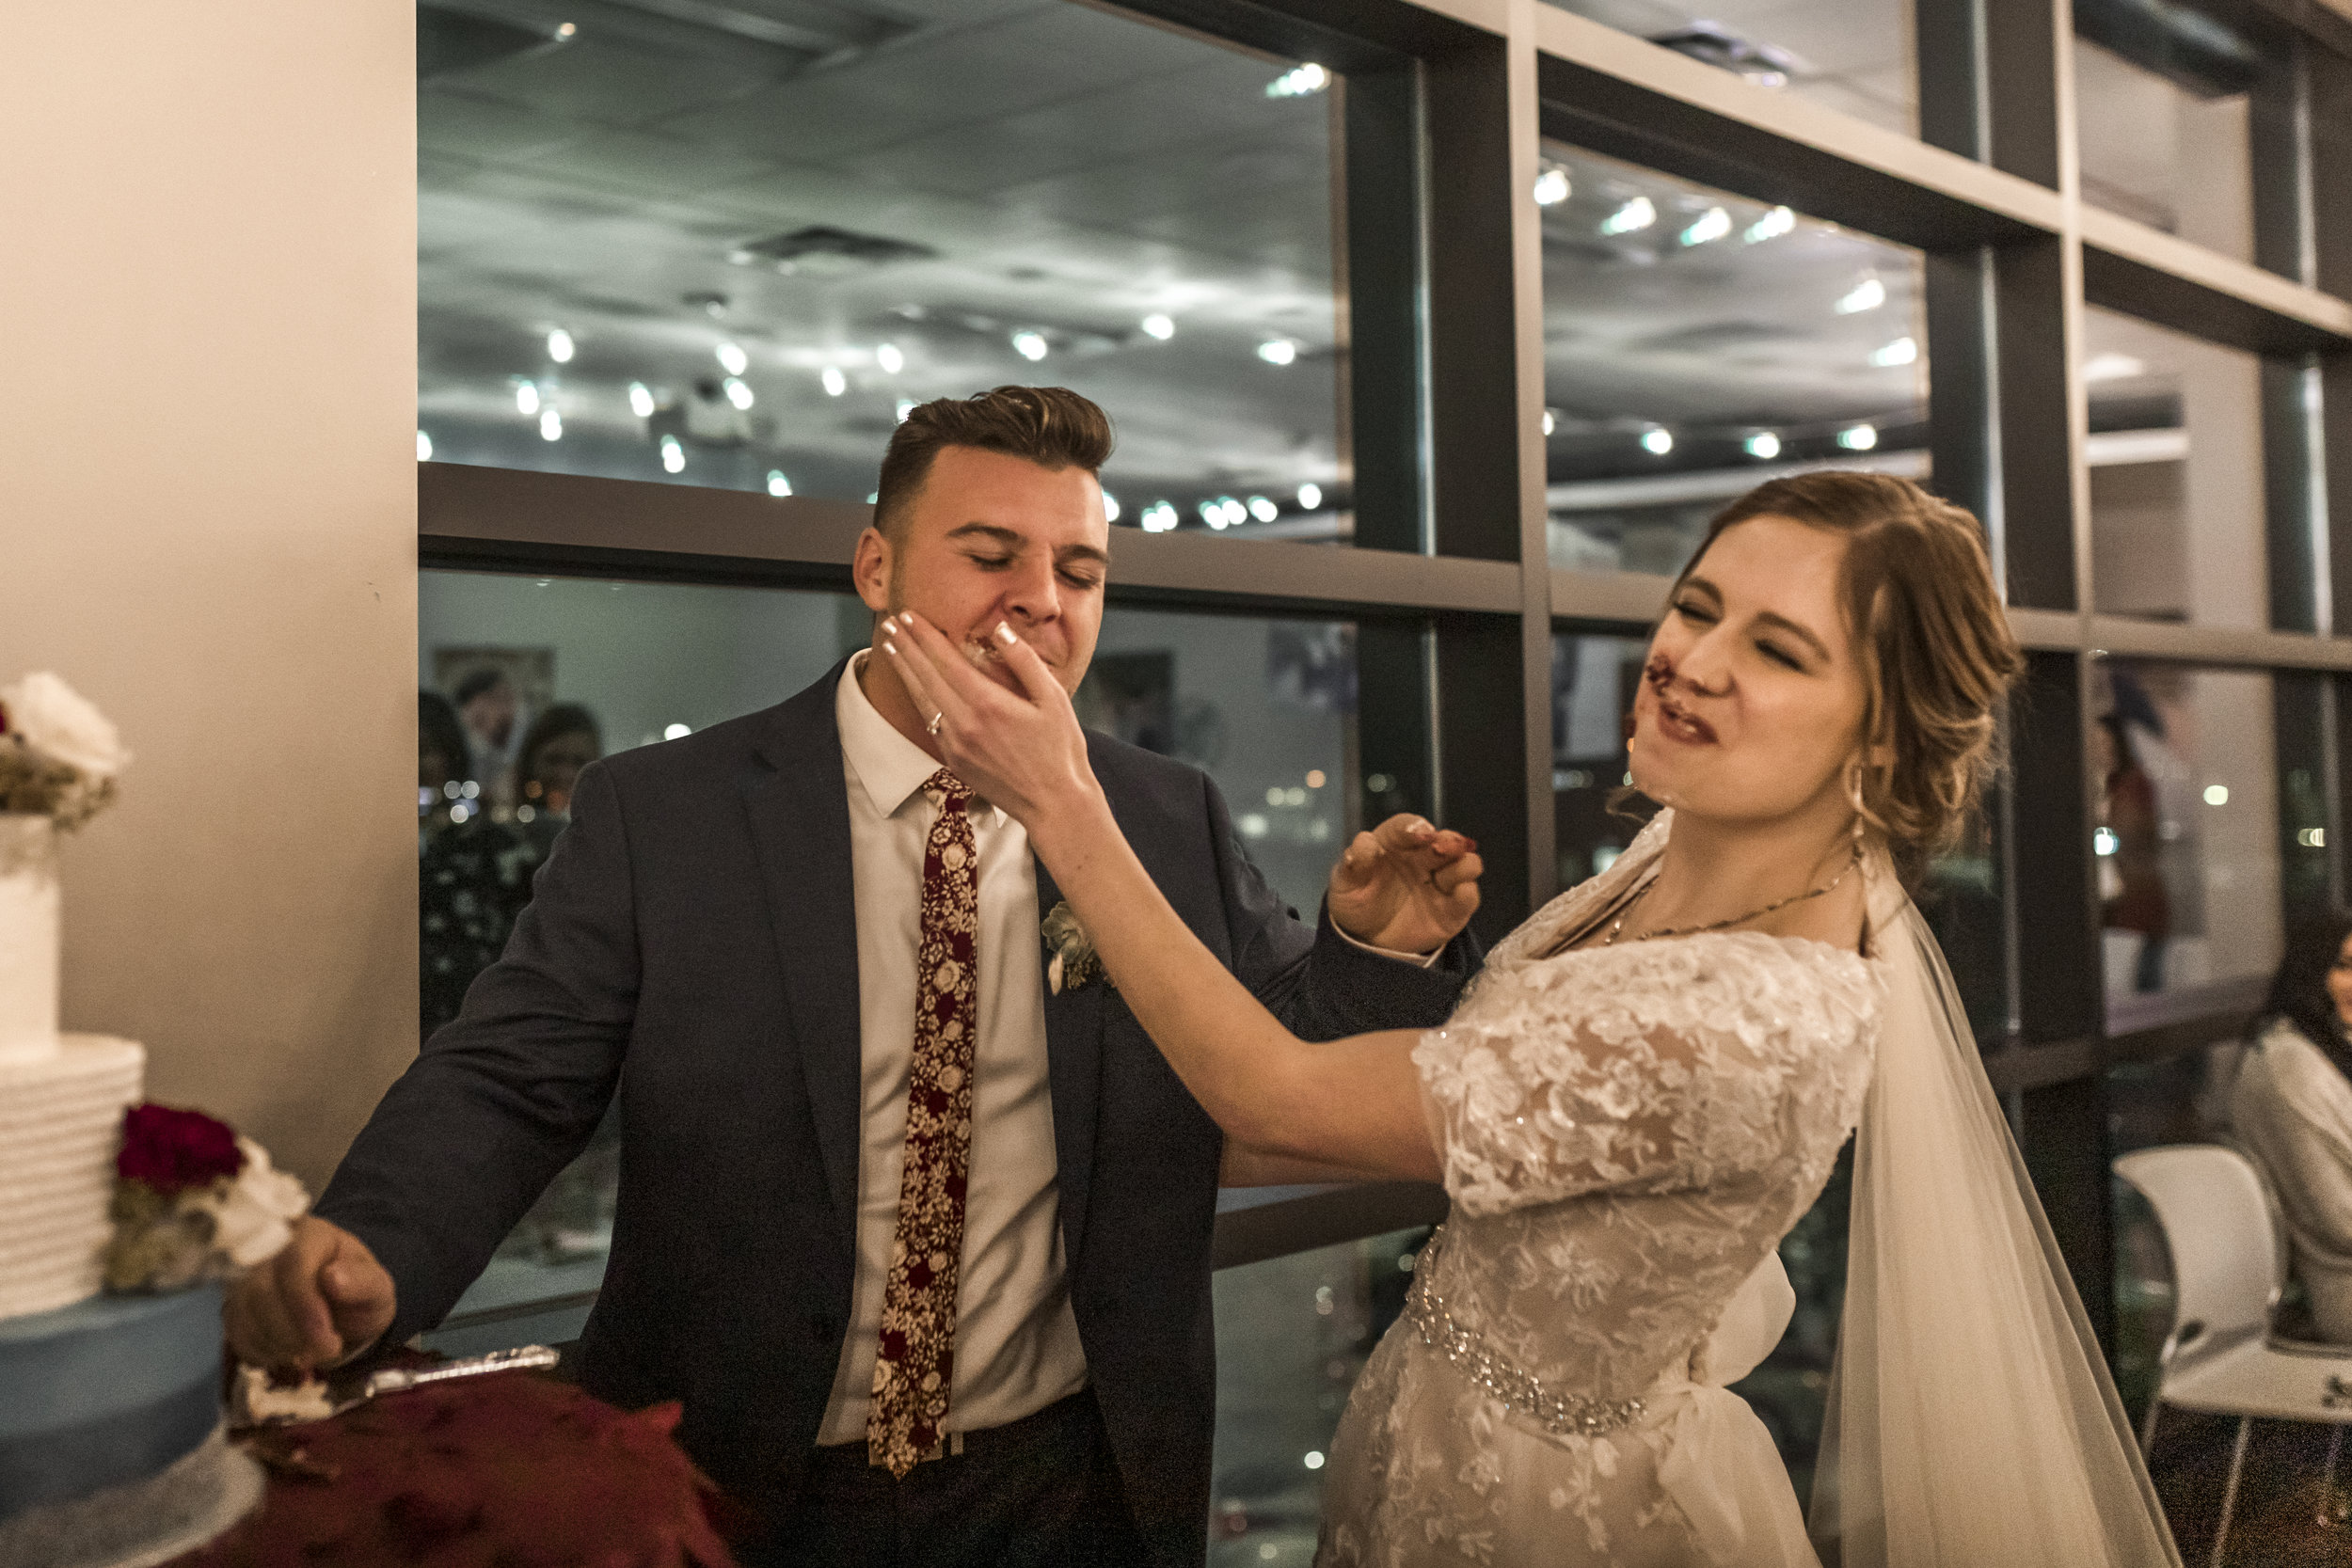 Skyler + Austin | Eleve Event Center Wedding Reception | Bri Bergman Photography 308.JPG